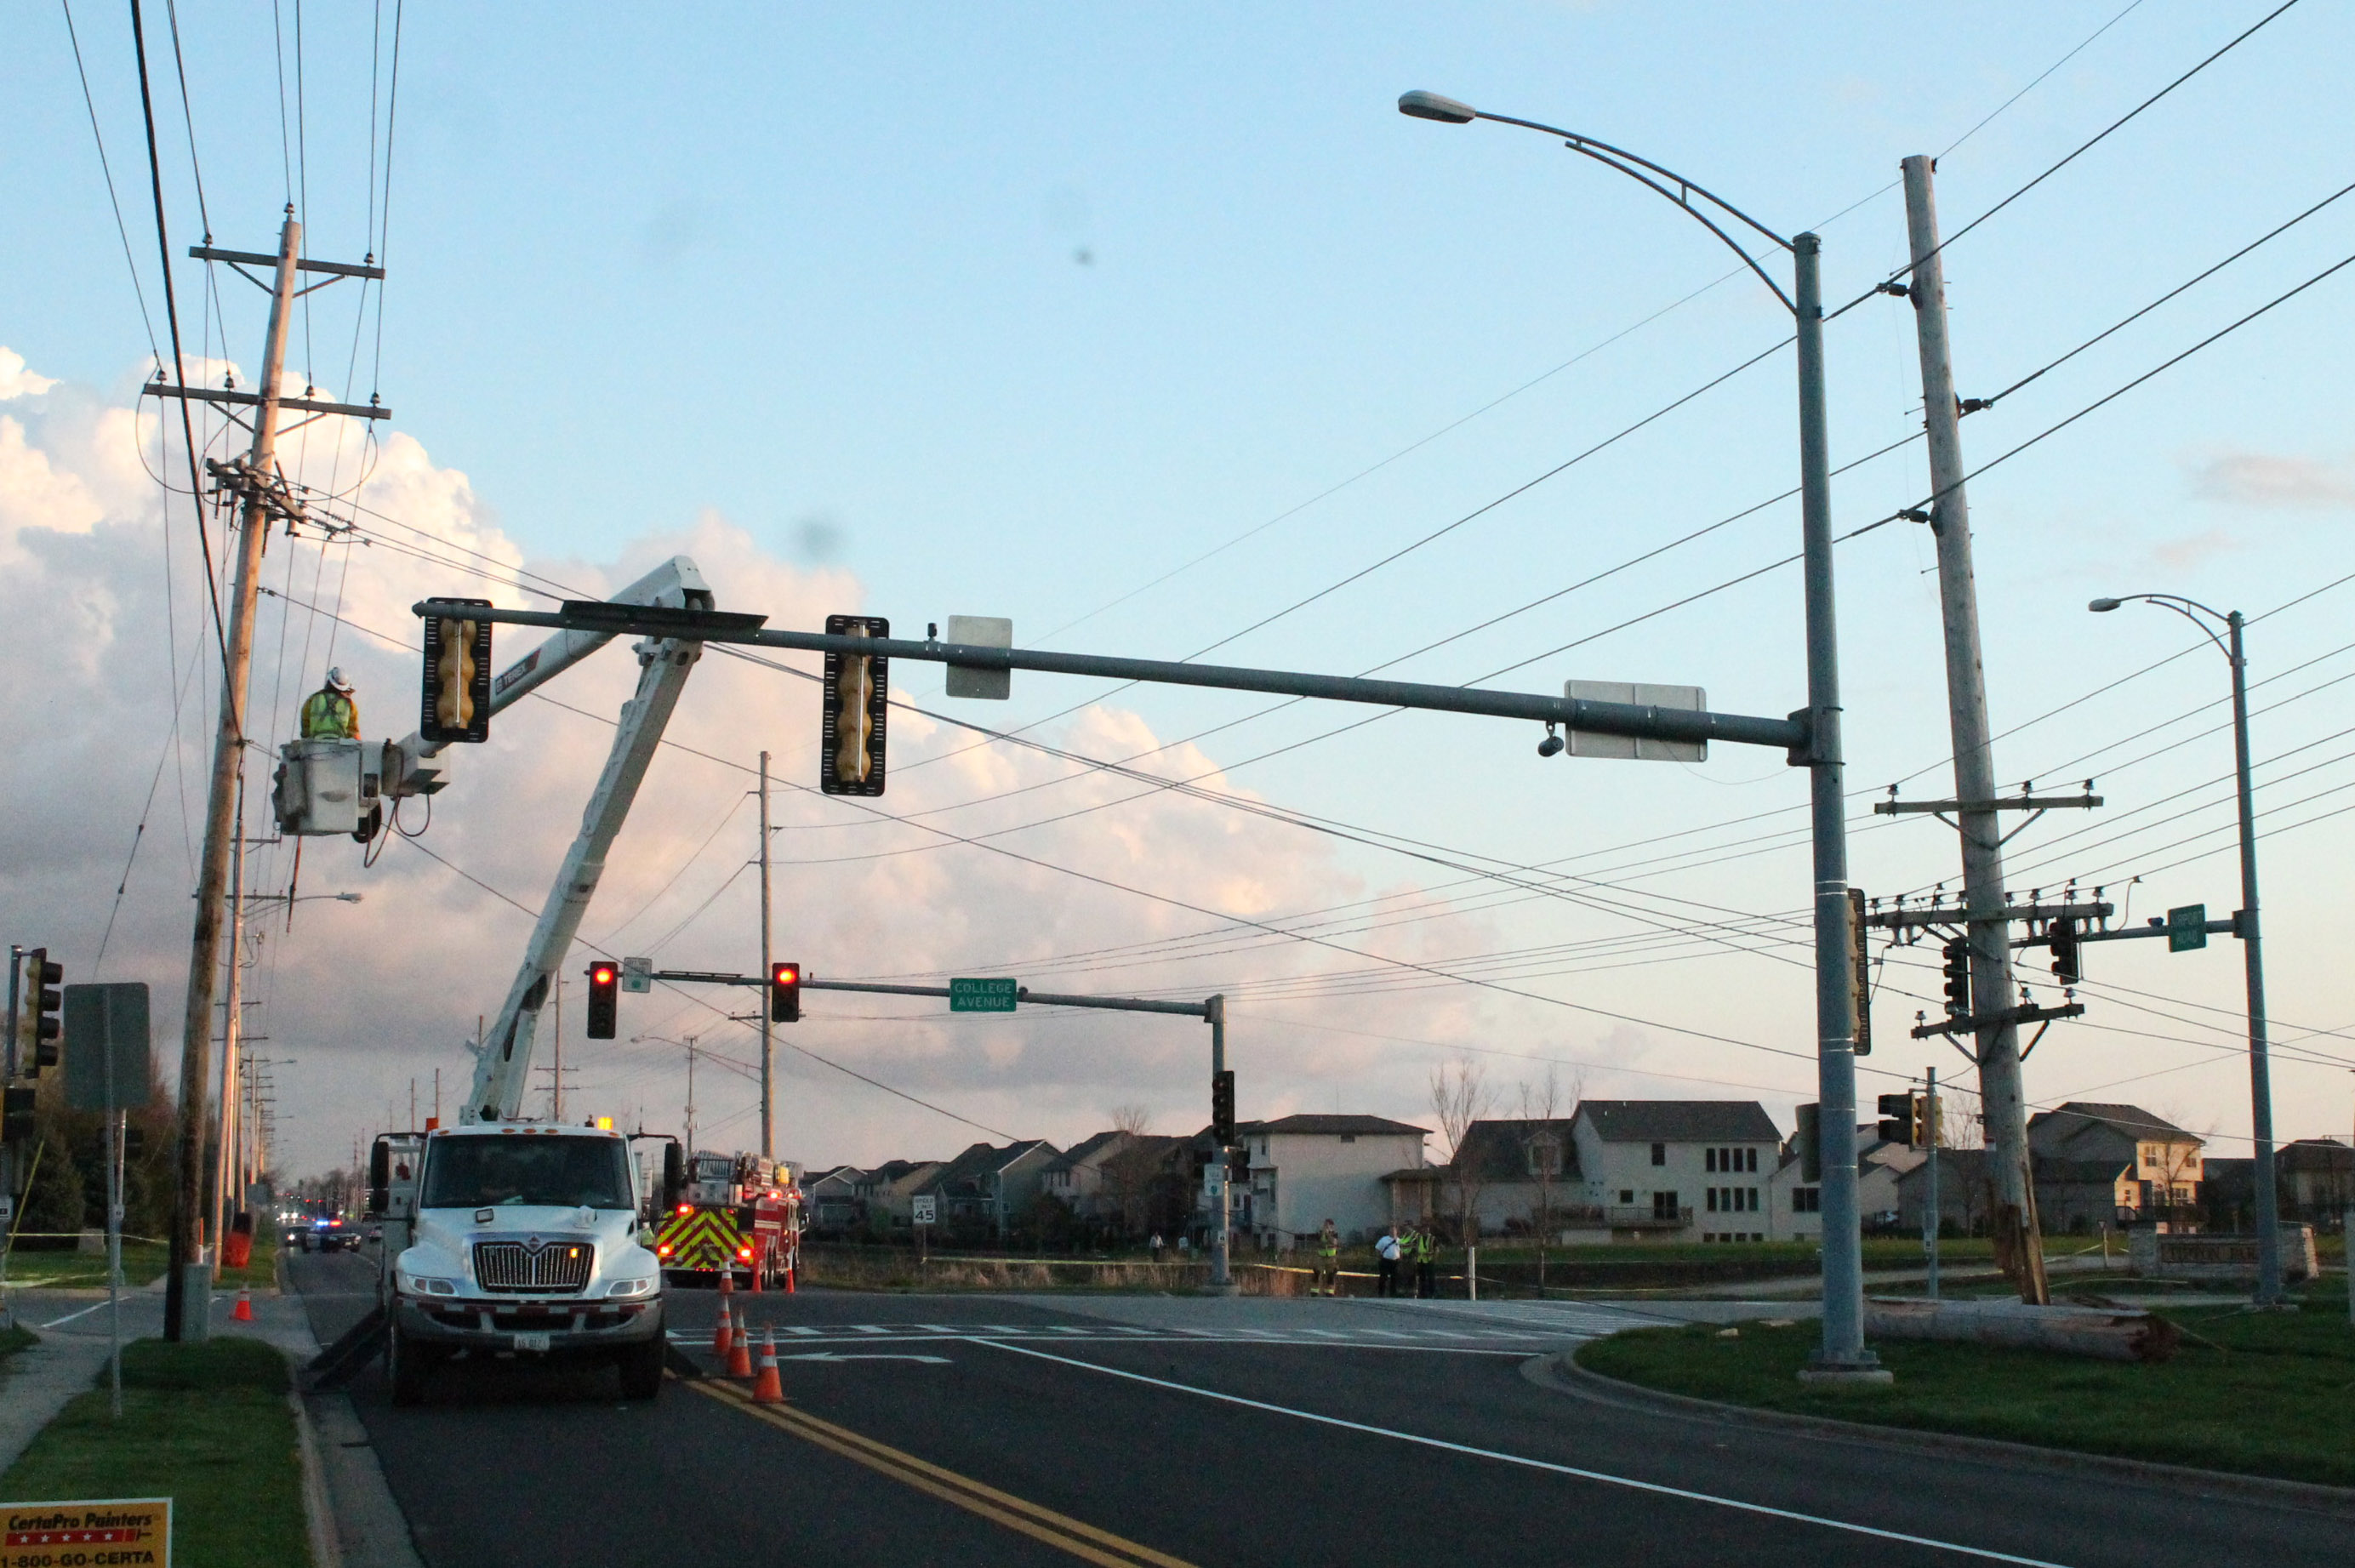 Due+to+the+damage+done+to+the+utility+pole%2C+the+intersection+was+closed+on+Monday+morning.